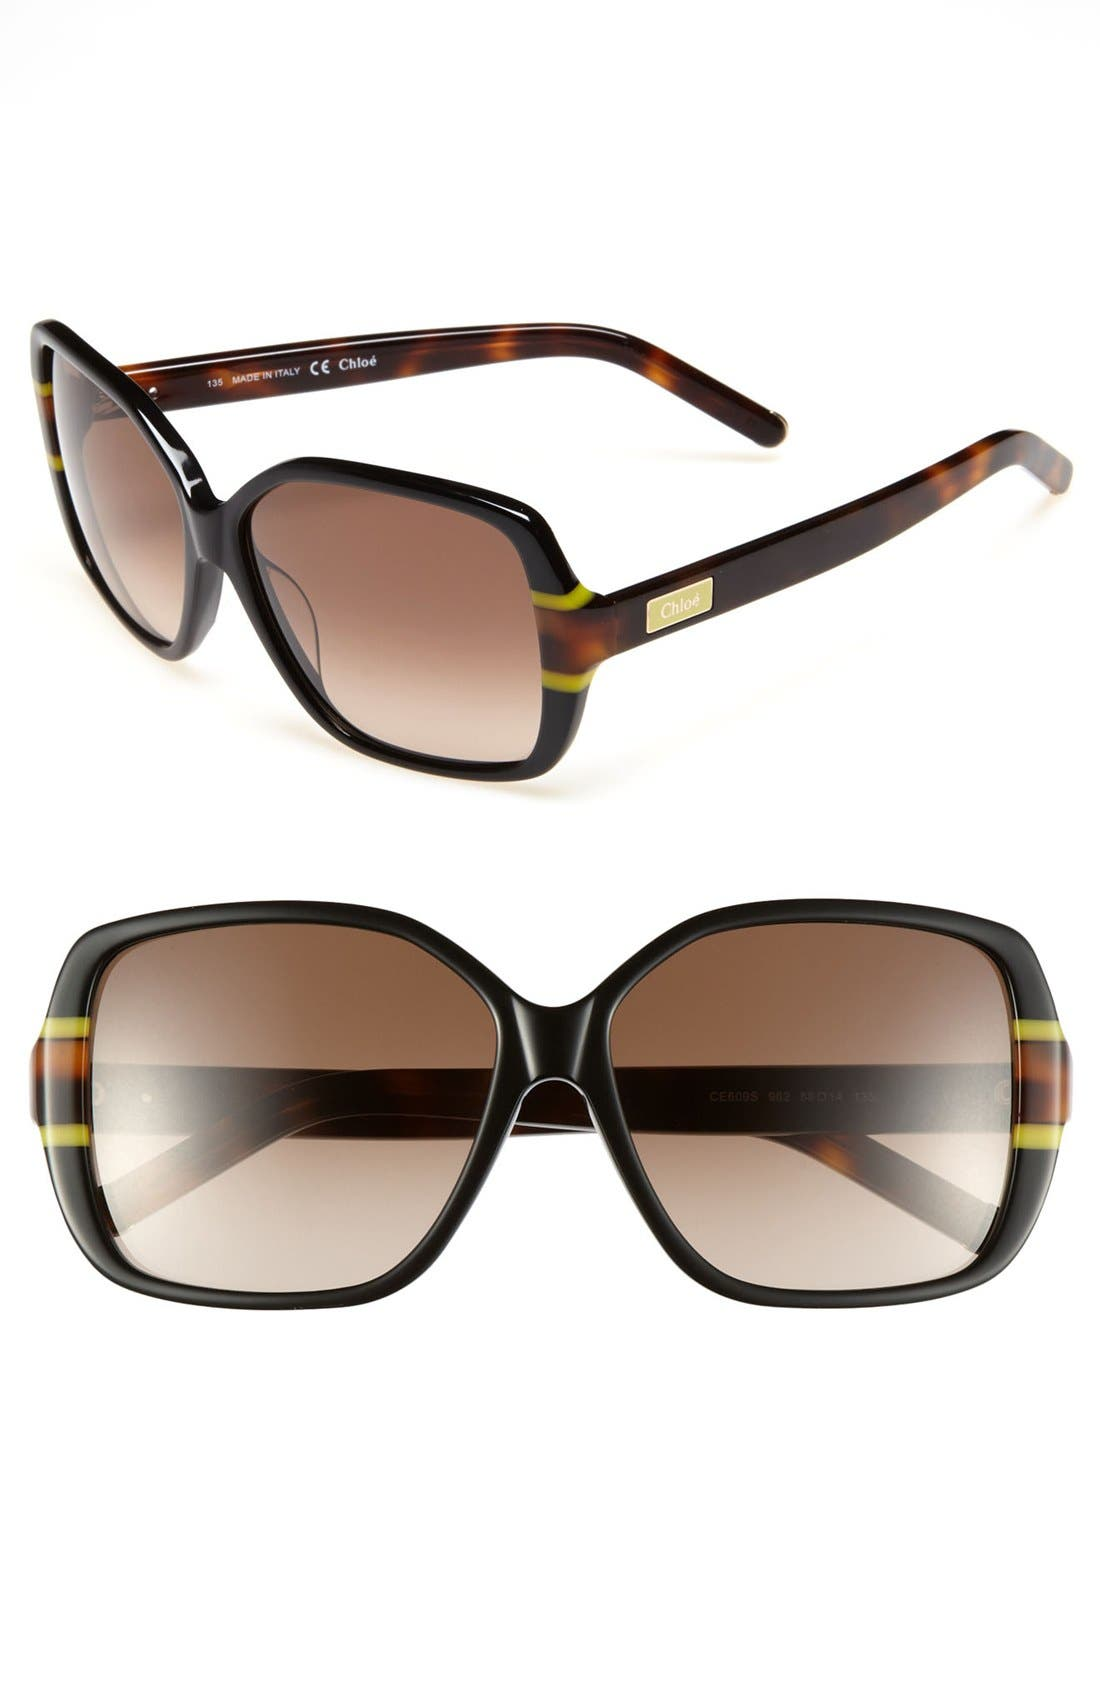 Main Image - Chloé 'Cycas' 58mm Sunglasses